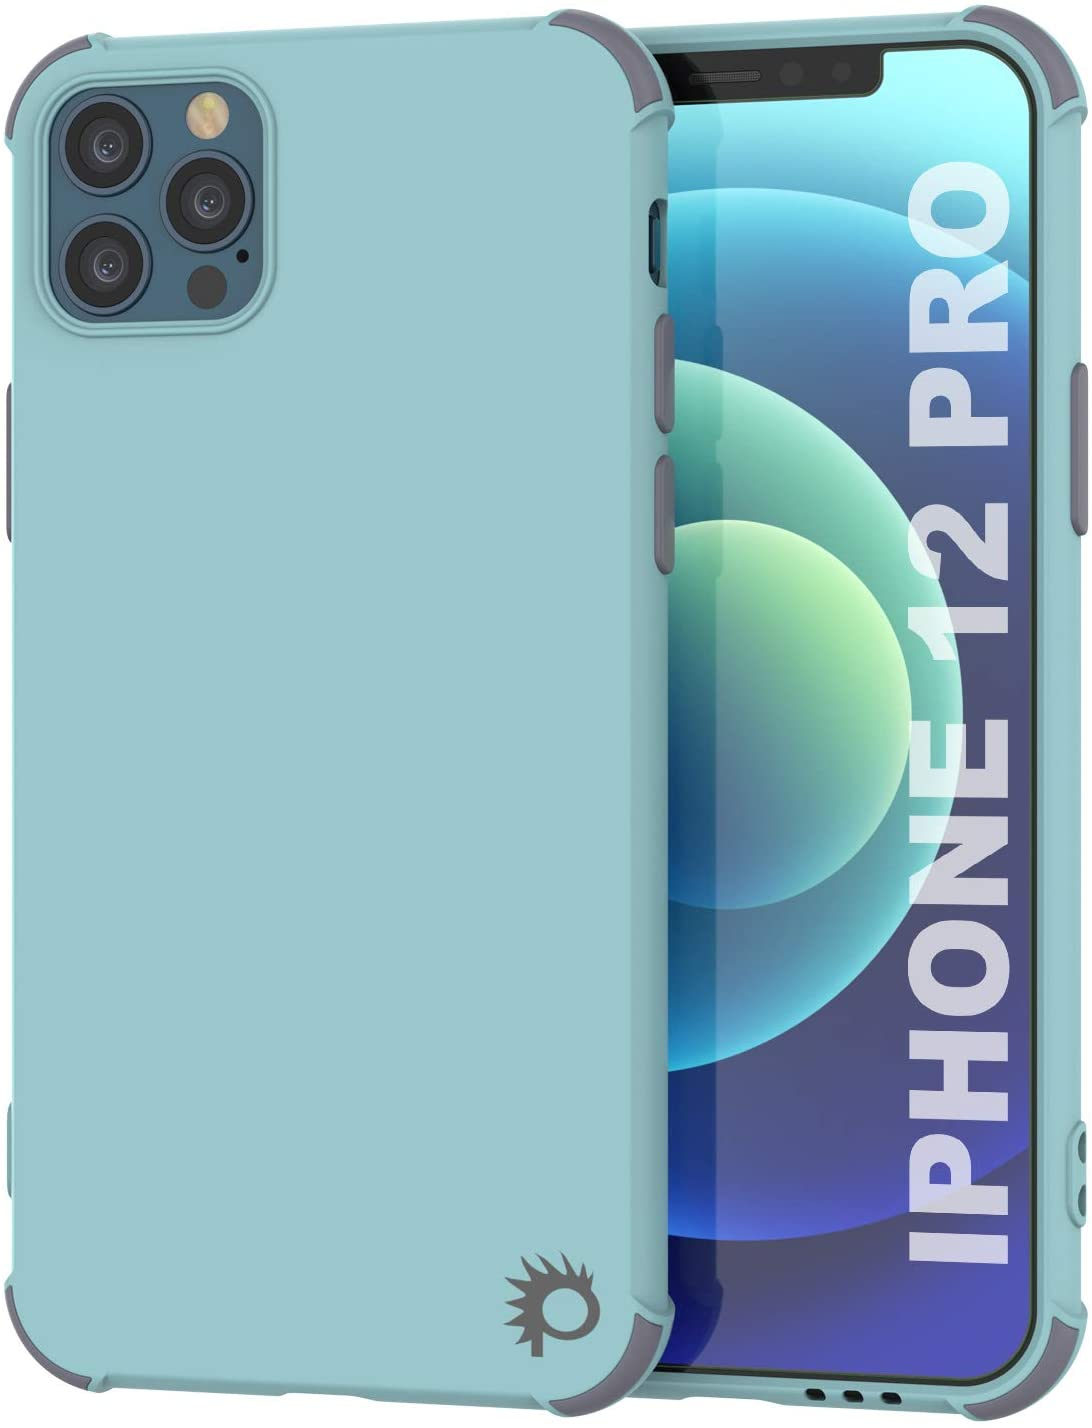 Punkcase Protective & Lightweight TPU Case [Sunshine Series] for iPhone 12 Pro [Teal]